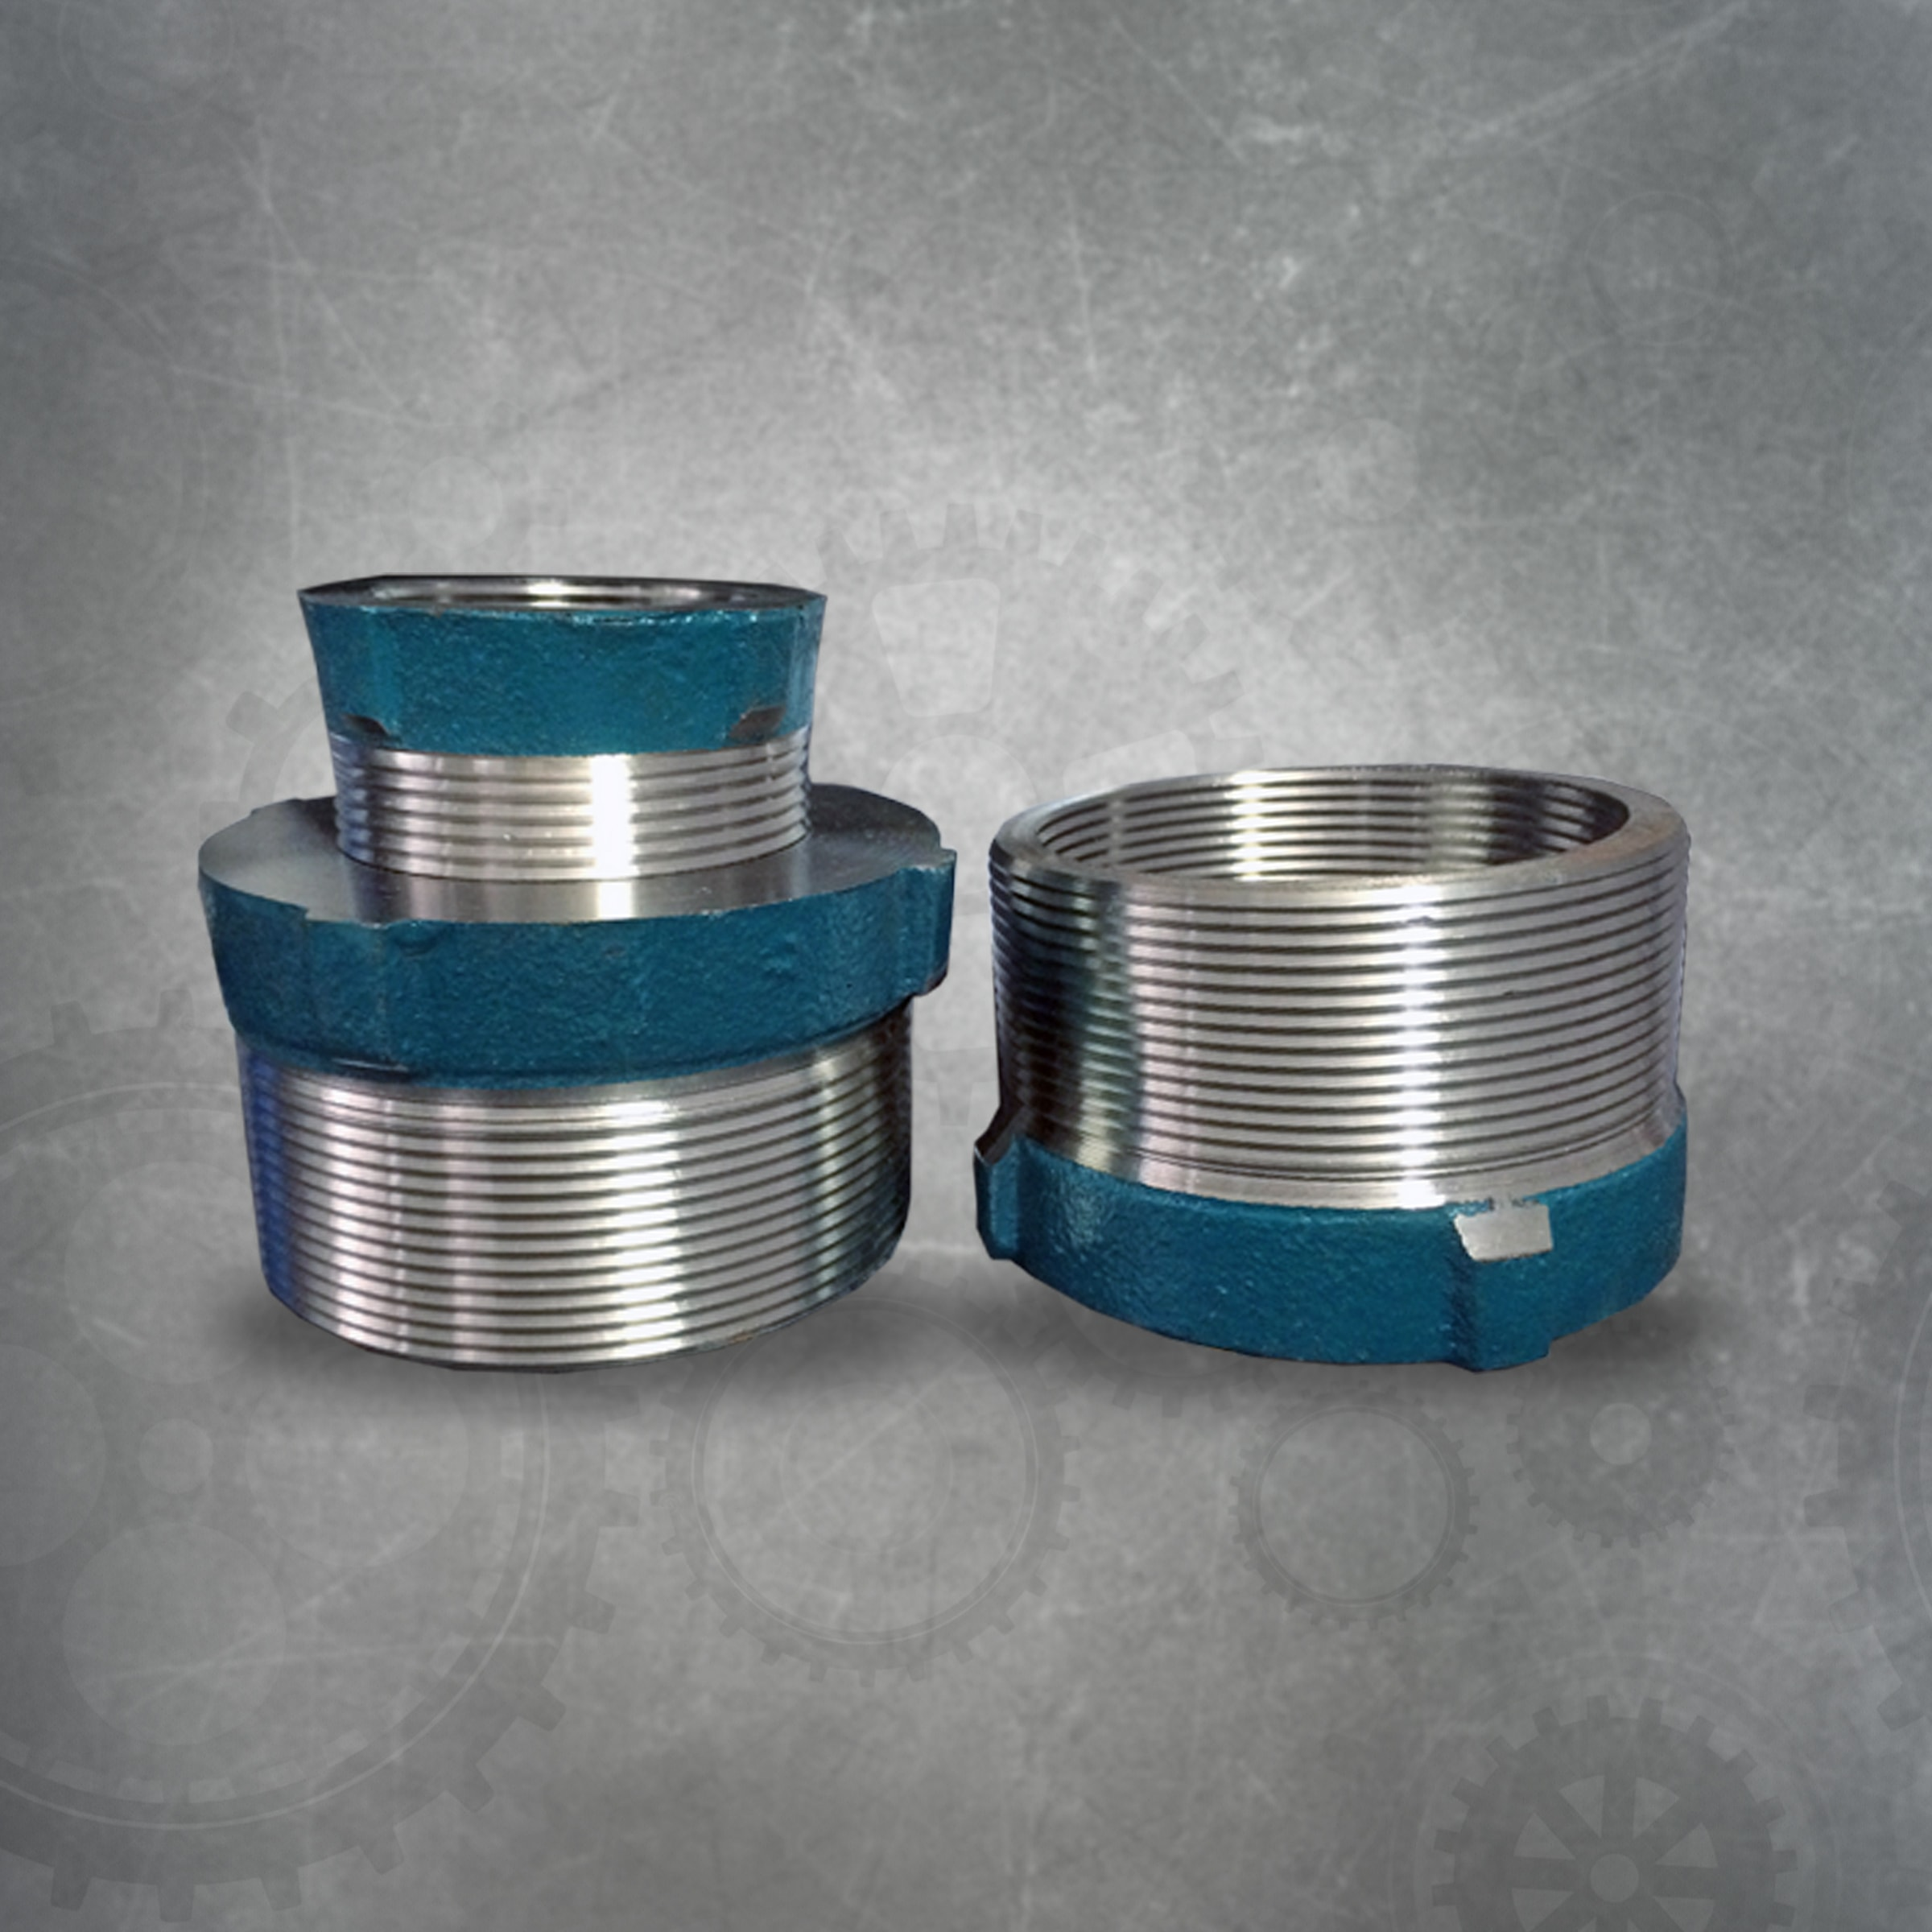 Stainless Steel Reduce Bush Manufacturer in India